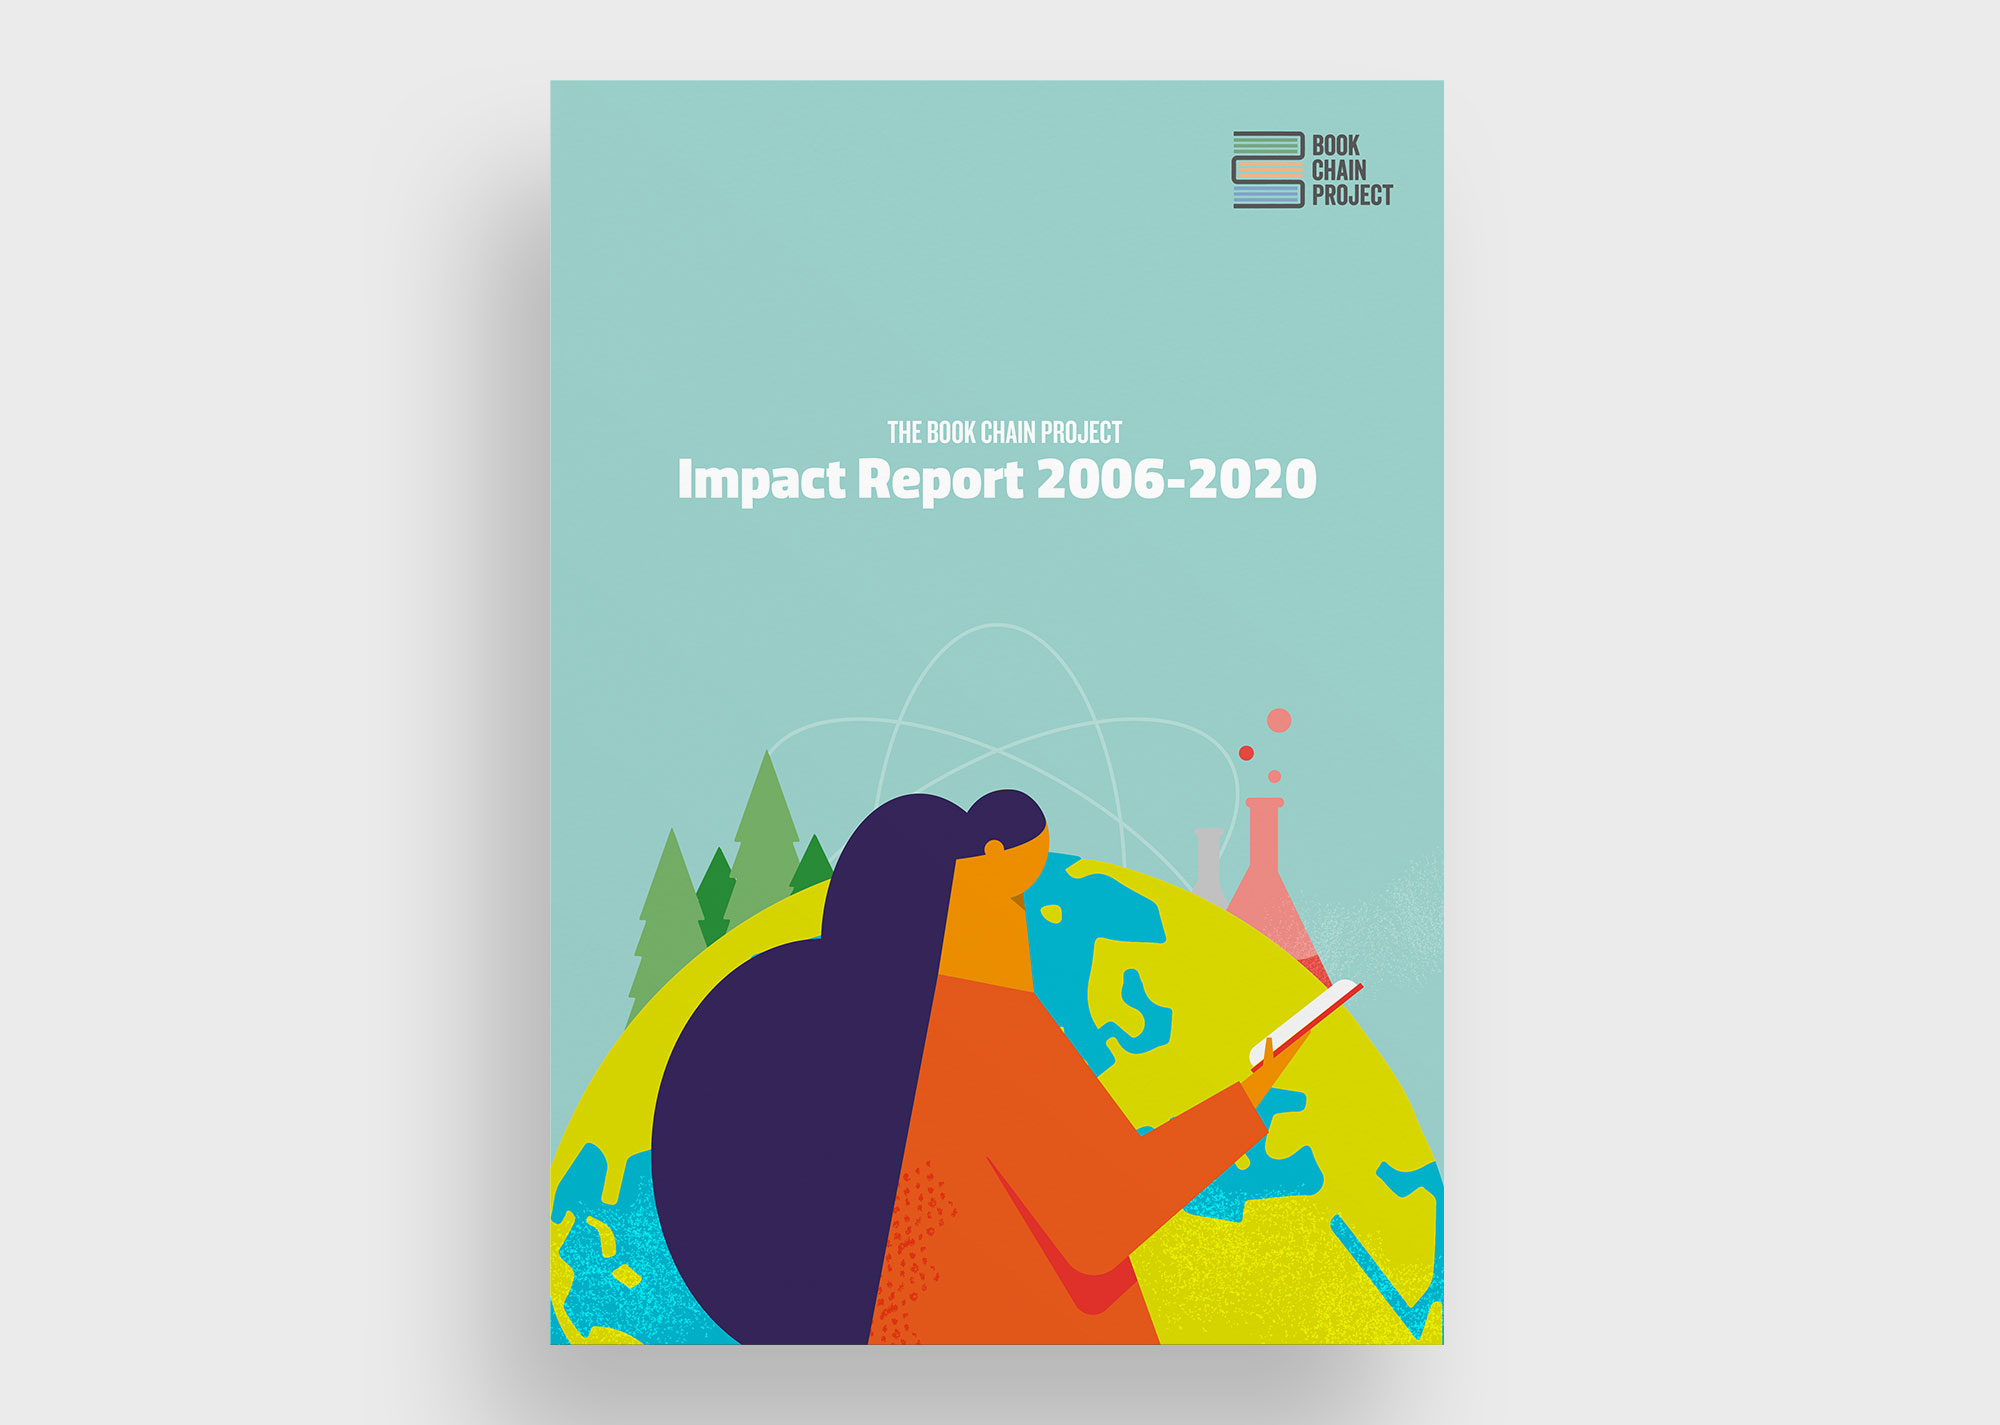 Book Chain Impact Report 2020 cover